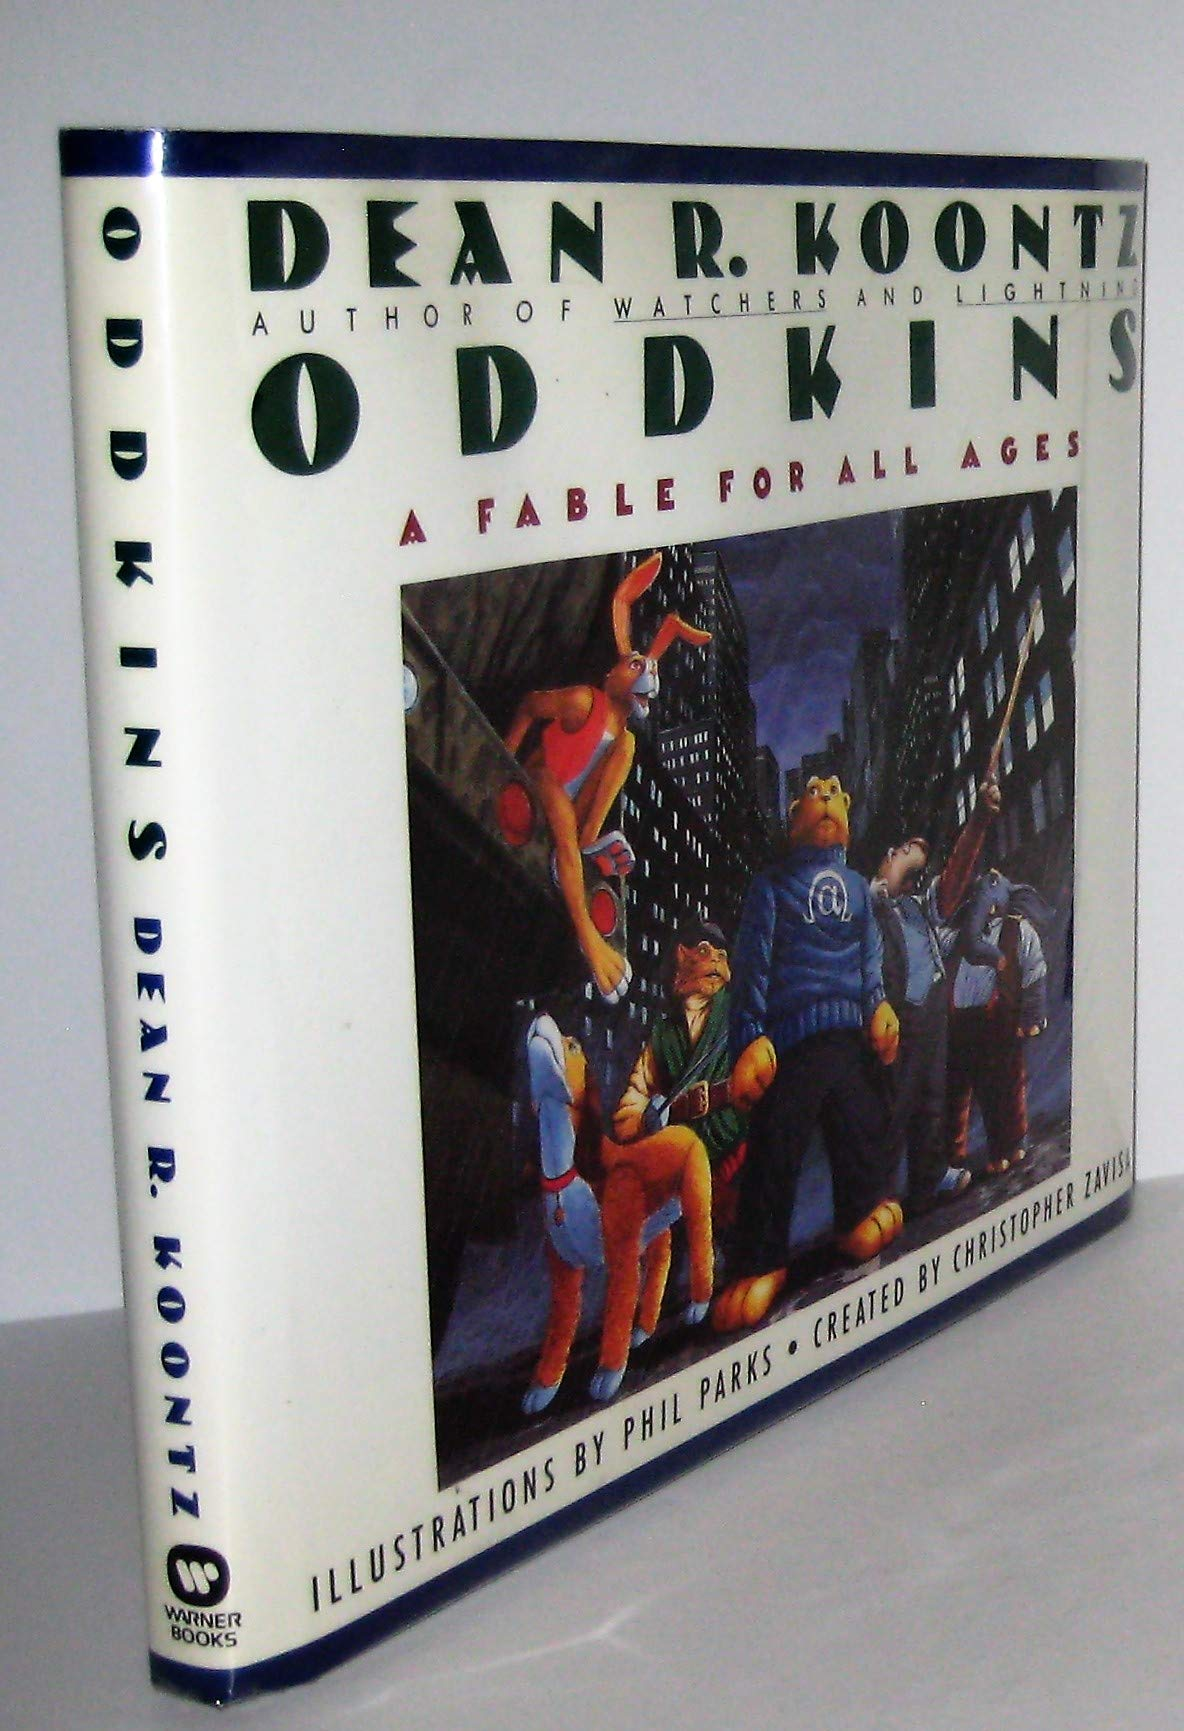 Oddkins: A Fable for All Ages PDF